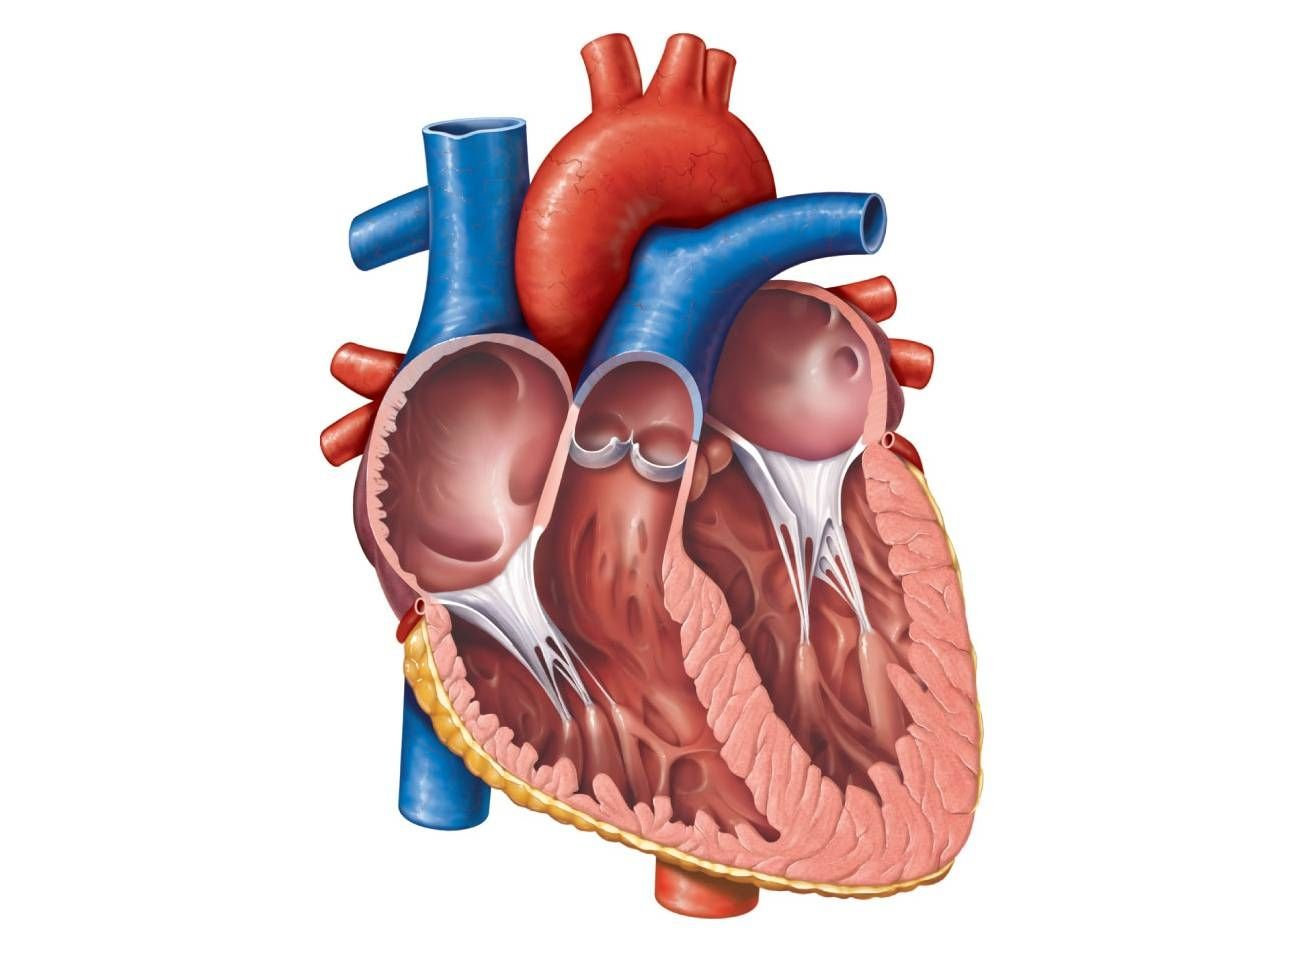 Anatomical Heart Diagram Anatomy Of The Heart Unlabeled